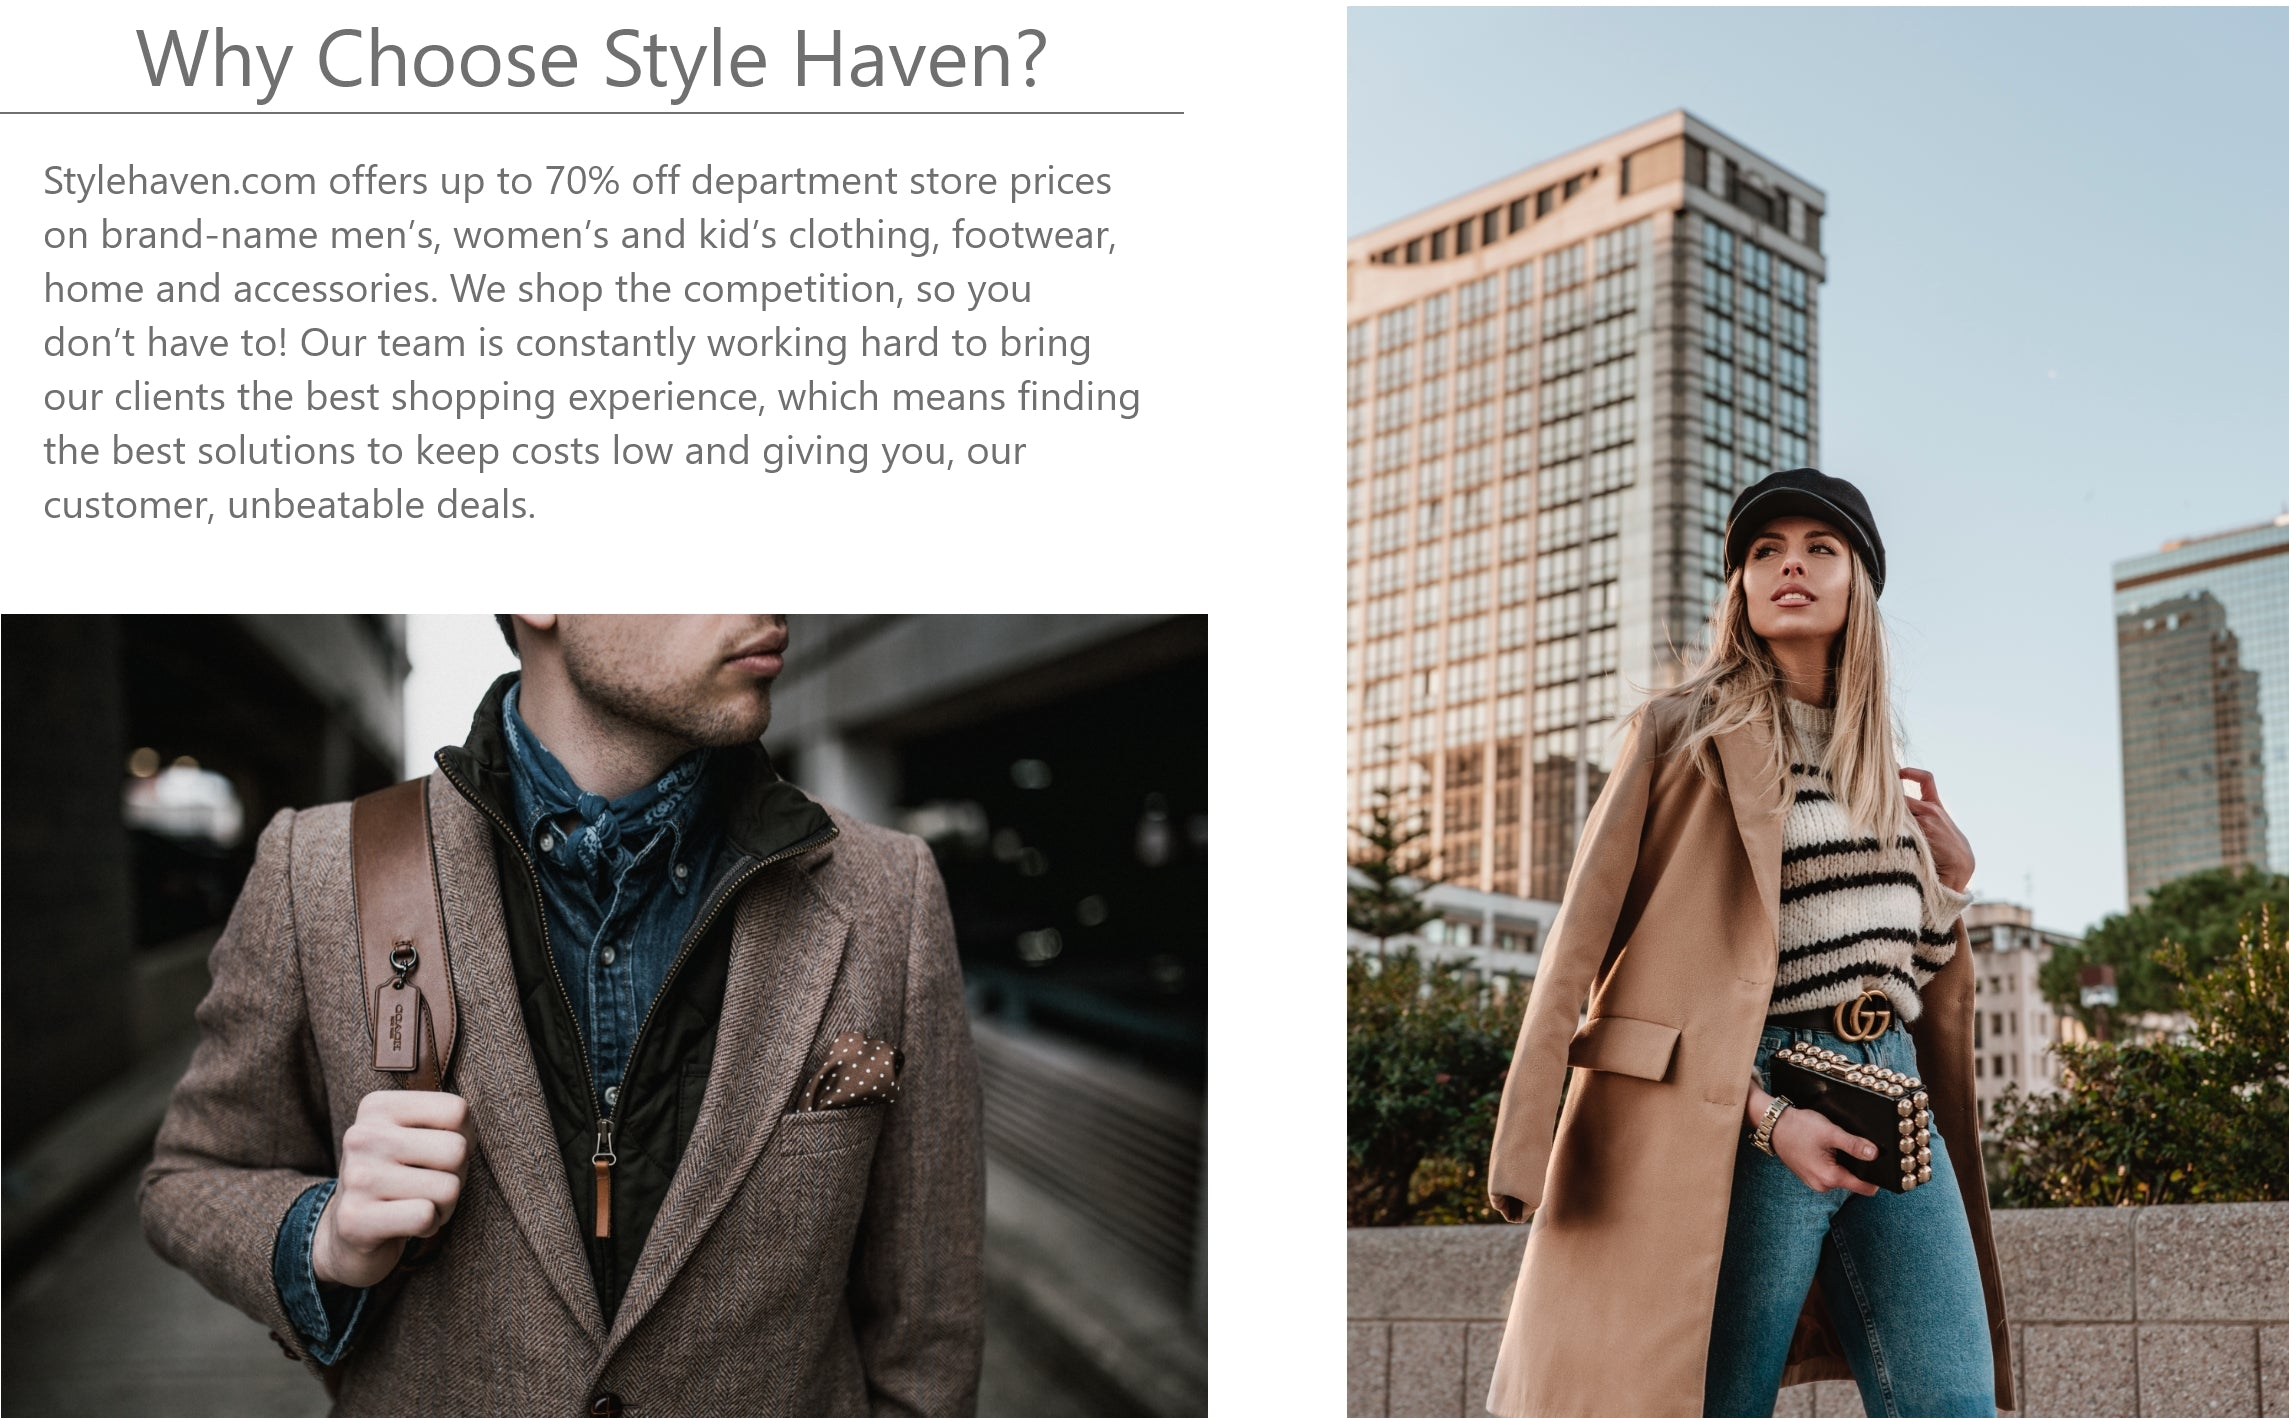 Why Choose Style Haven? Well we have the best products, and prices around.